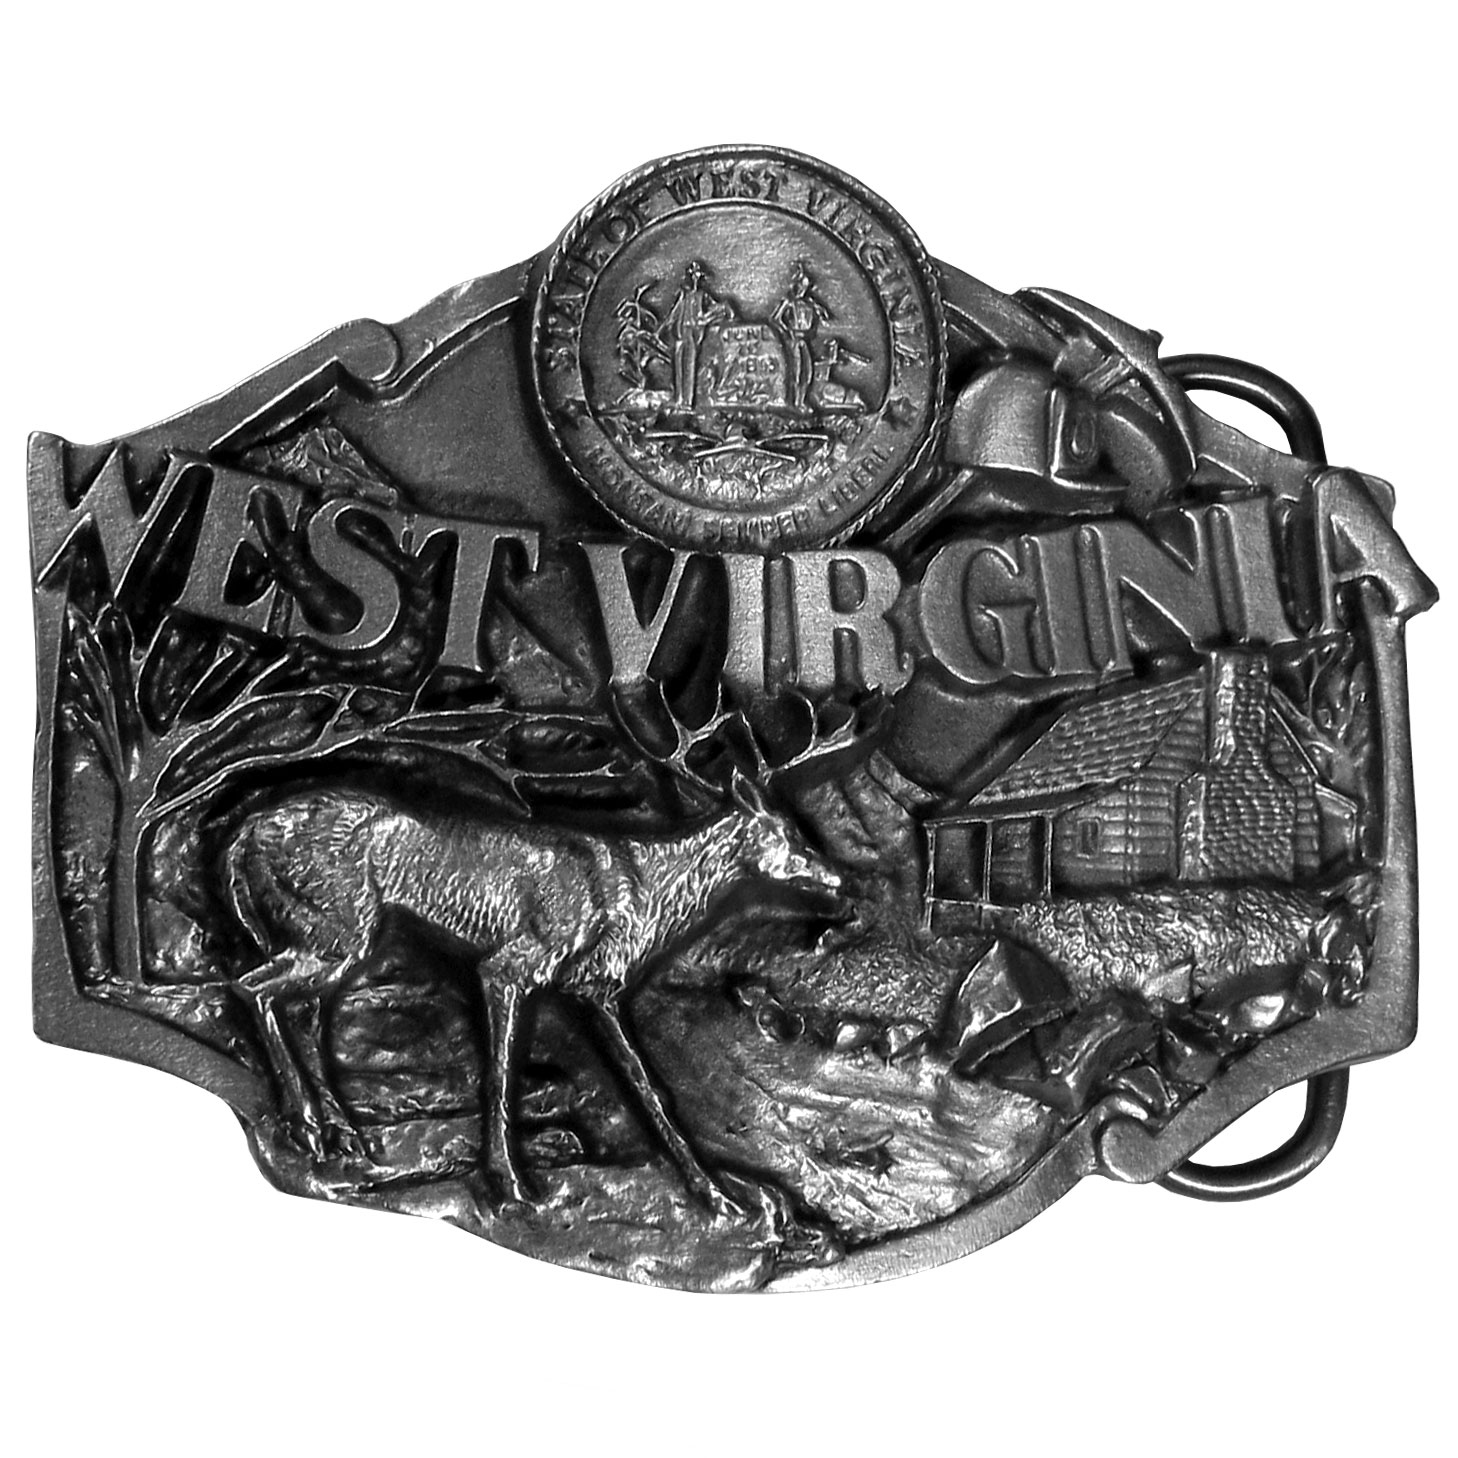 "W. Virginia Antiqued Belt Buckle - ""This belt buckle celebrates West Virginia.  On the top is the state seal of West Virginia, with a miner hat and pickaxe below.  """"West Virginia"""" is written in bold with a deer, a log cabin, a river, mountain and trees below.  On the back are the words, """"West Virginia became the 35th state on June 20, 1863.  The state flower is the Rhododendron and the state bird is the Cardinal.""""  This exquisitely carved buckle is made of fully cast metal with a standard bale that fits up to 2"""" belts."""